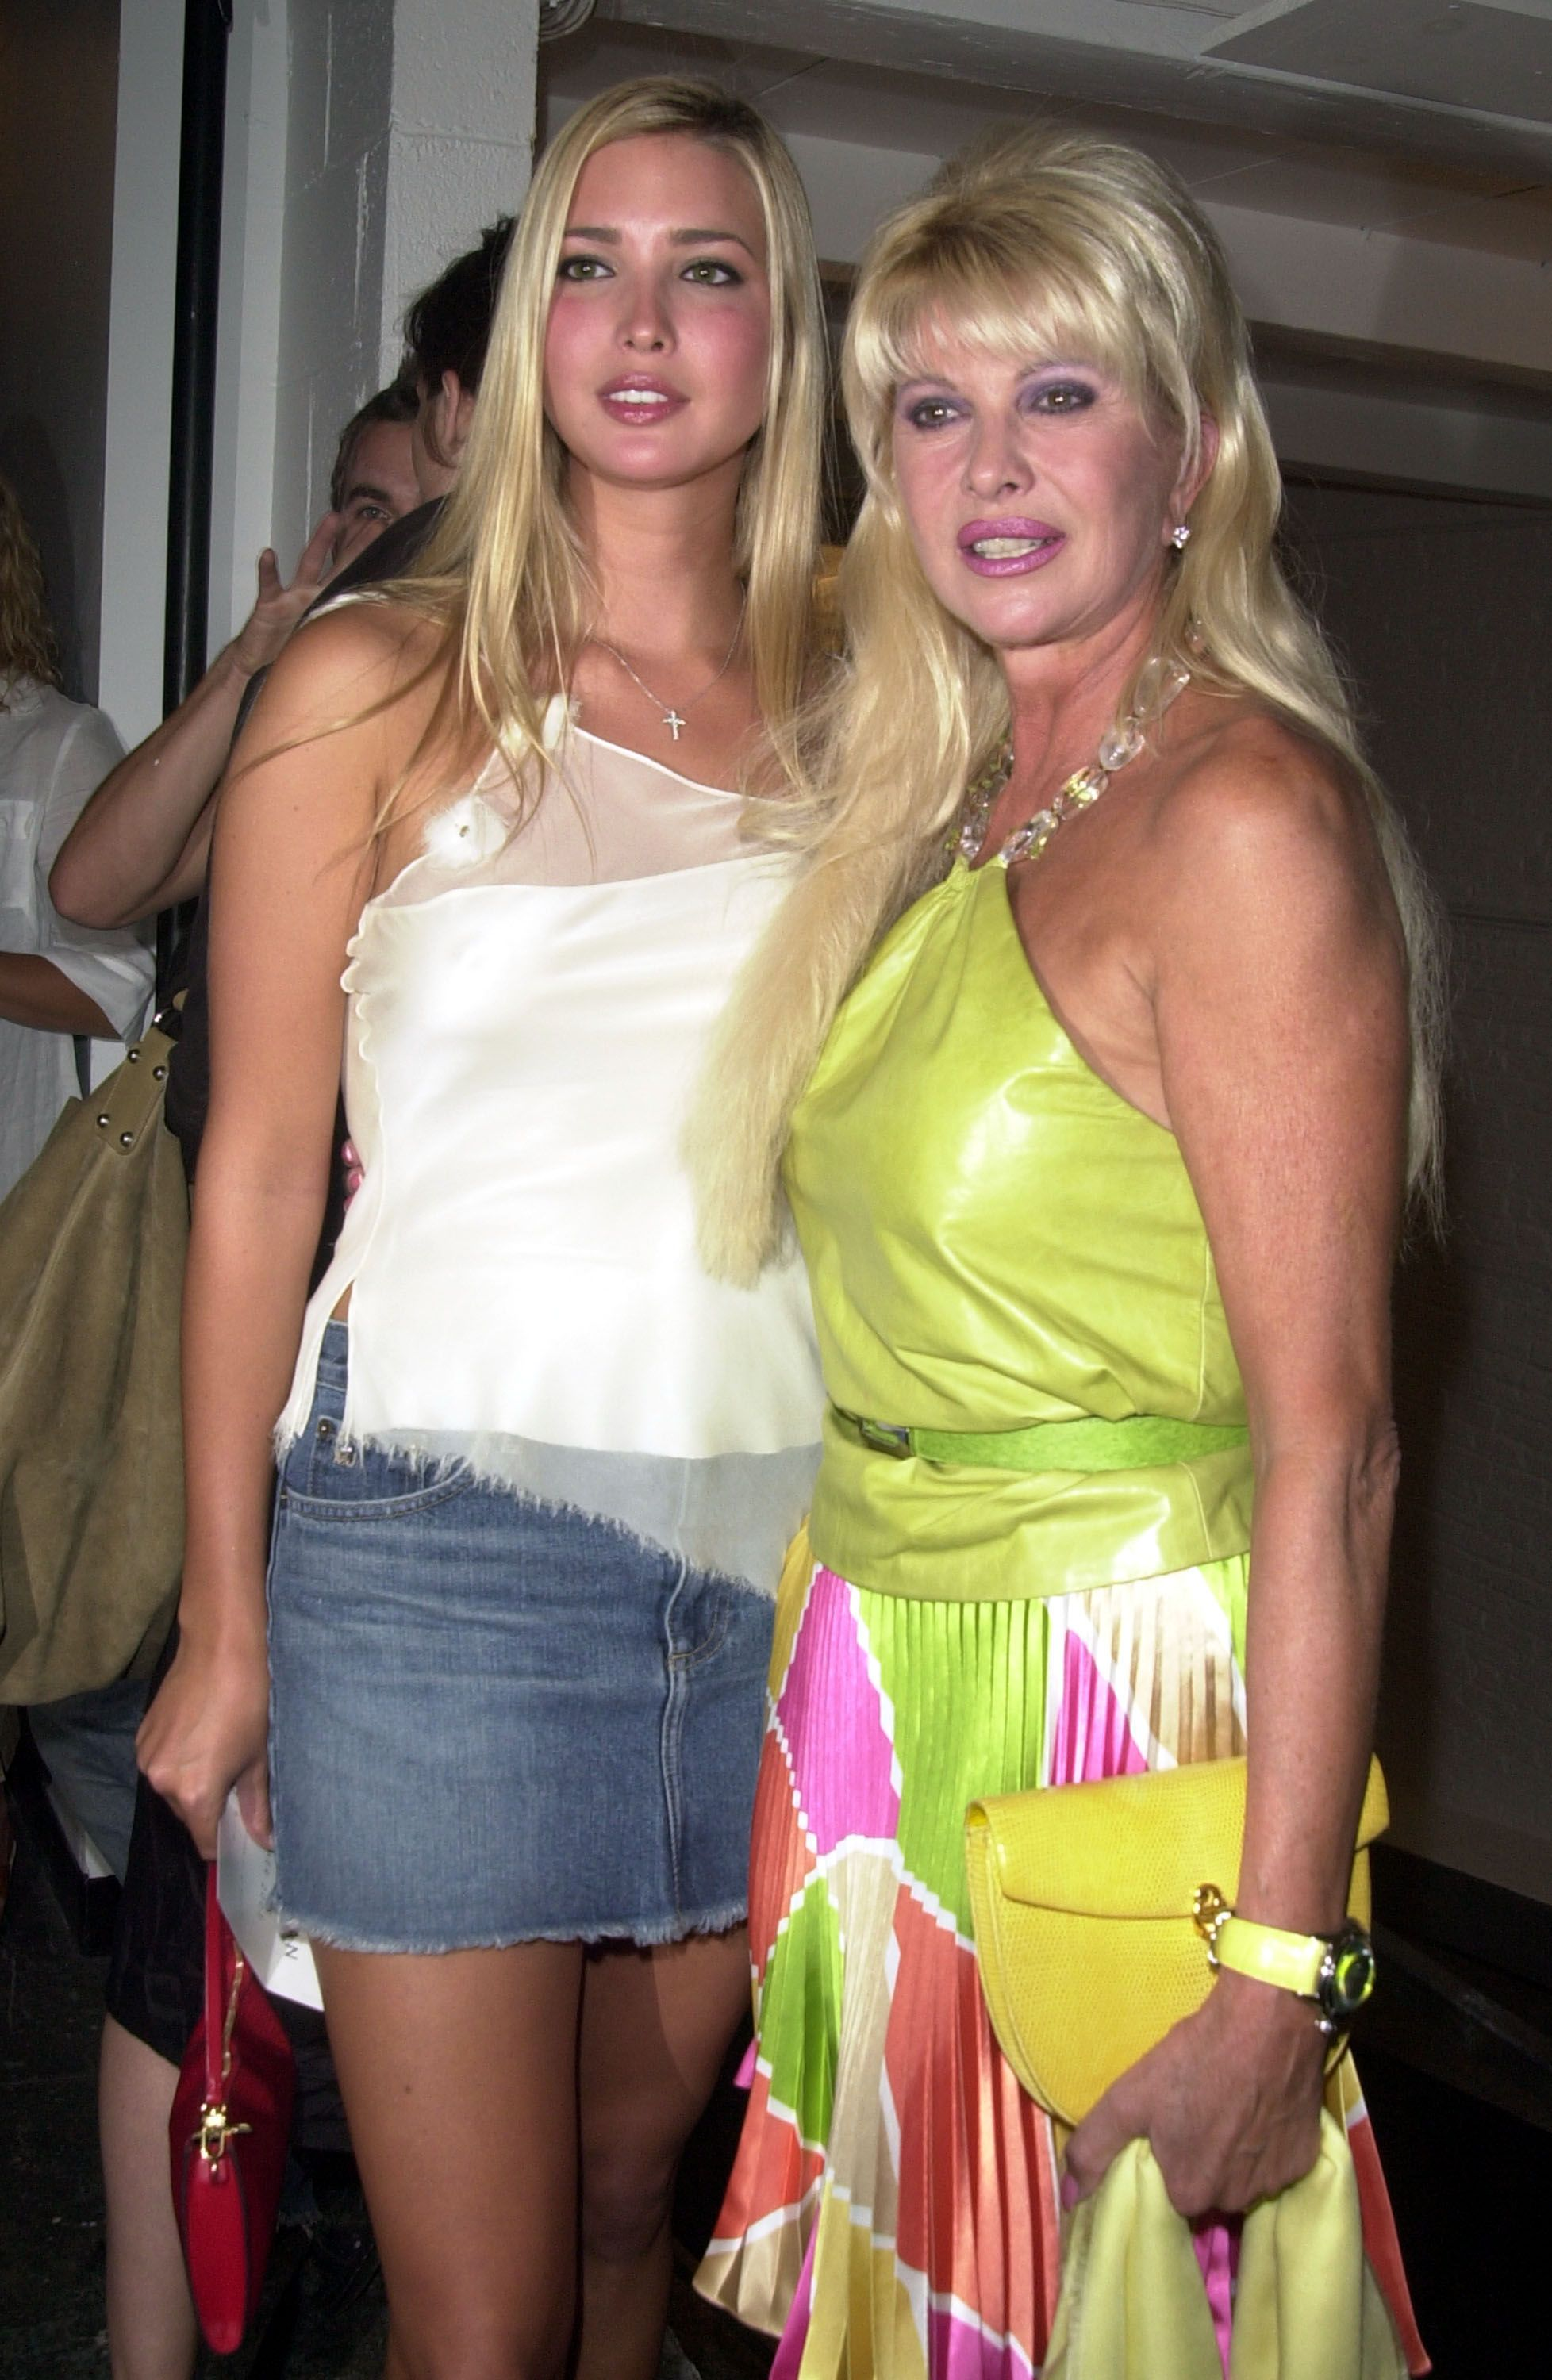 Ivanka Trump and Ivana Trump during 2002 New York Fashion Week in New York, United States | Photo: Getty Images